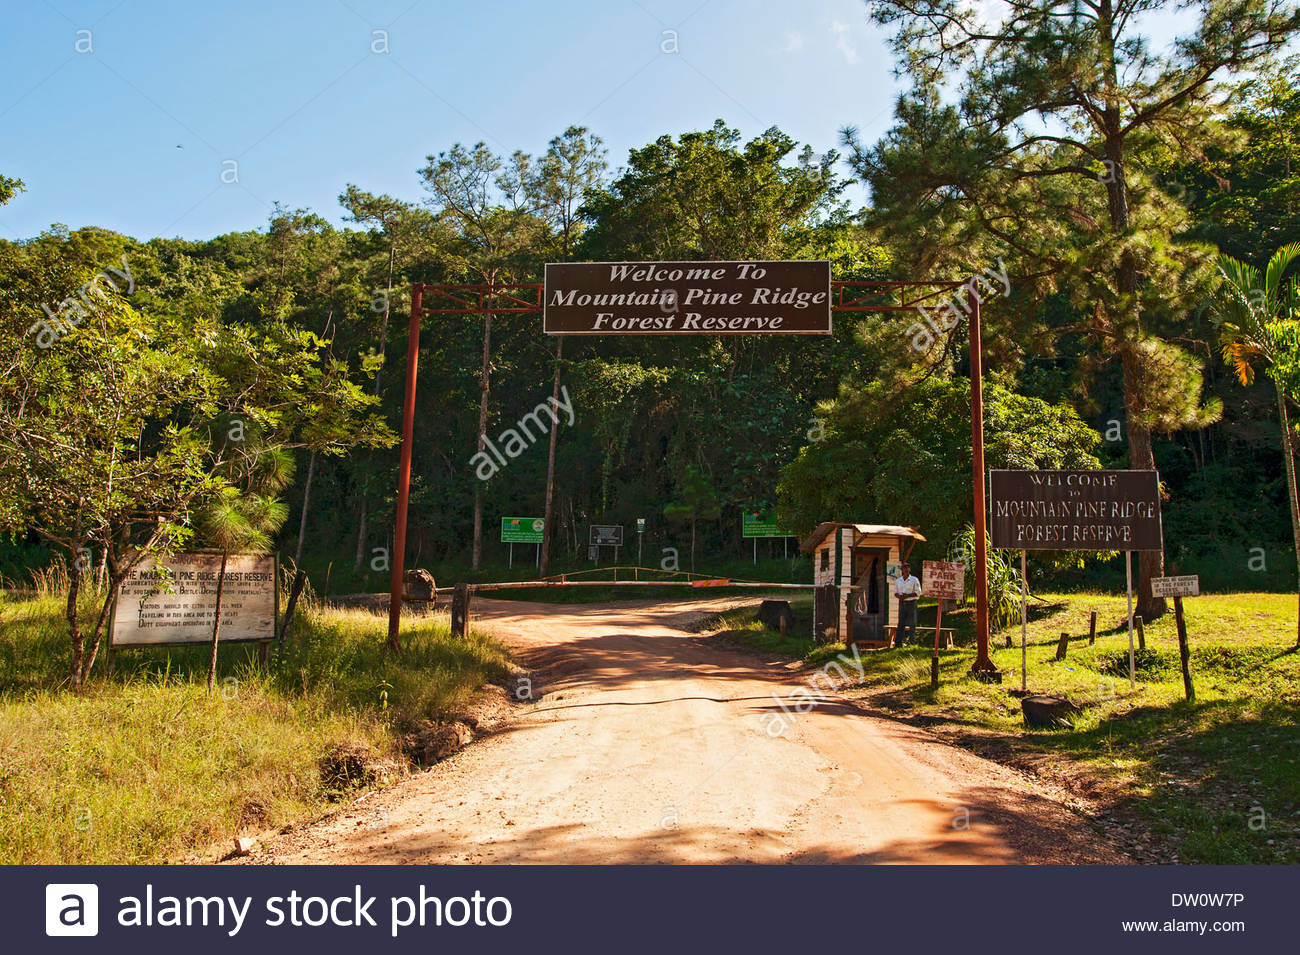 Mountain Pine Ridge Forest Reserve Mountain Pine Ridge Area, Entrance to Mountain Pine Ridge Forest Reserve, Belize Stock Photo ...